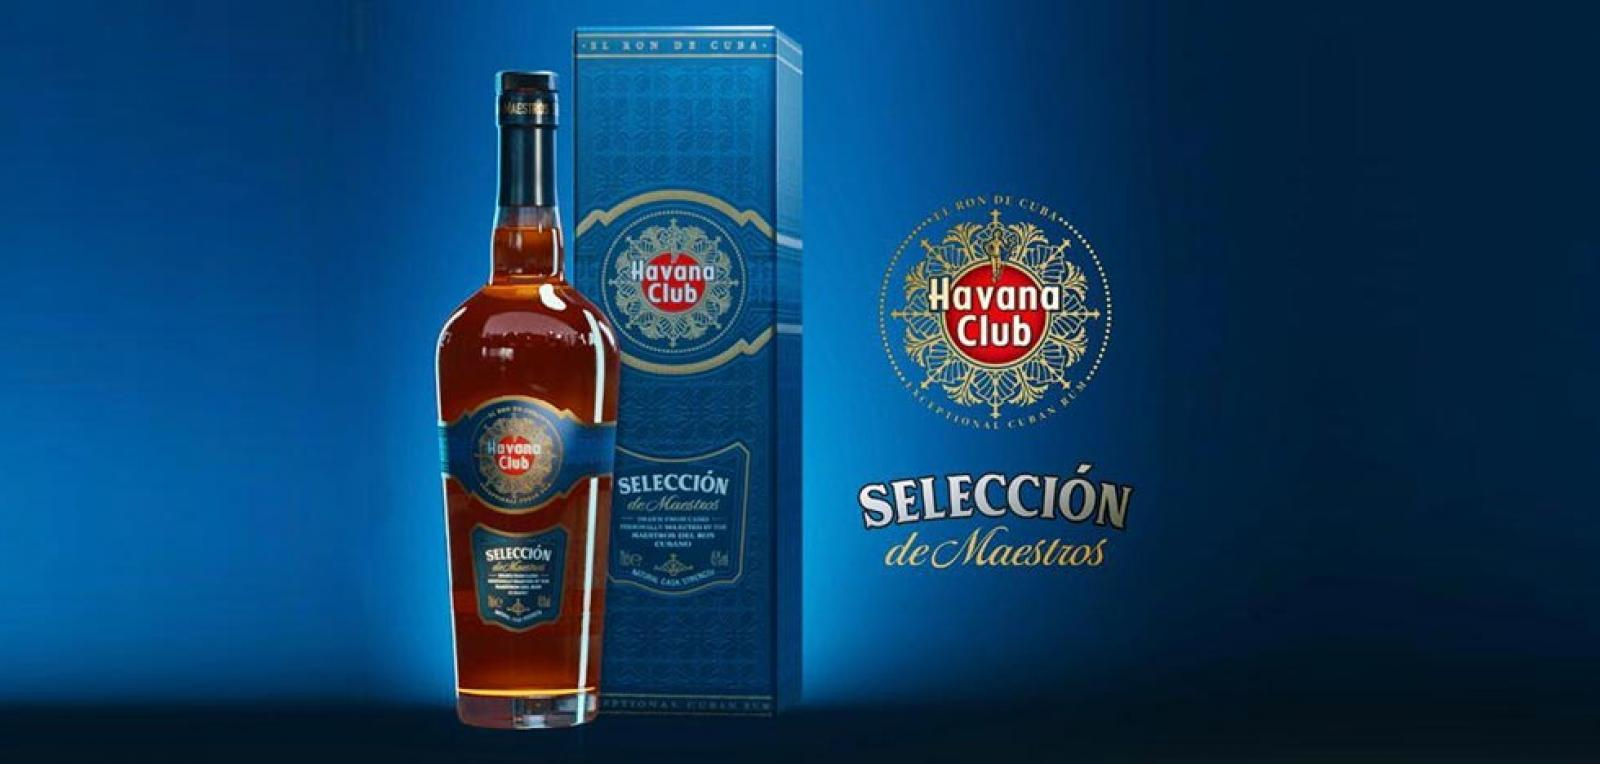 Havana Club Selection of Masters changes its image